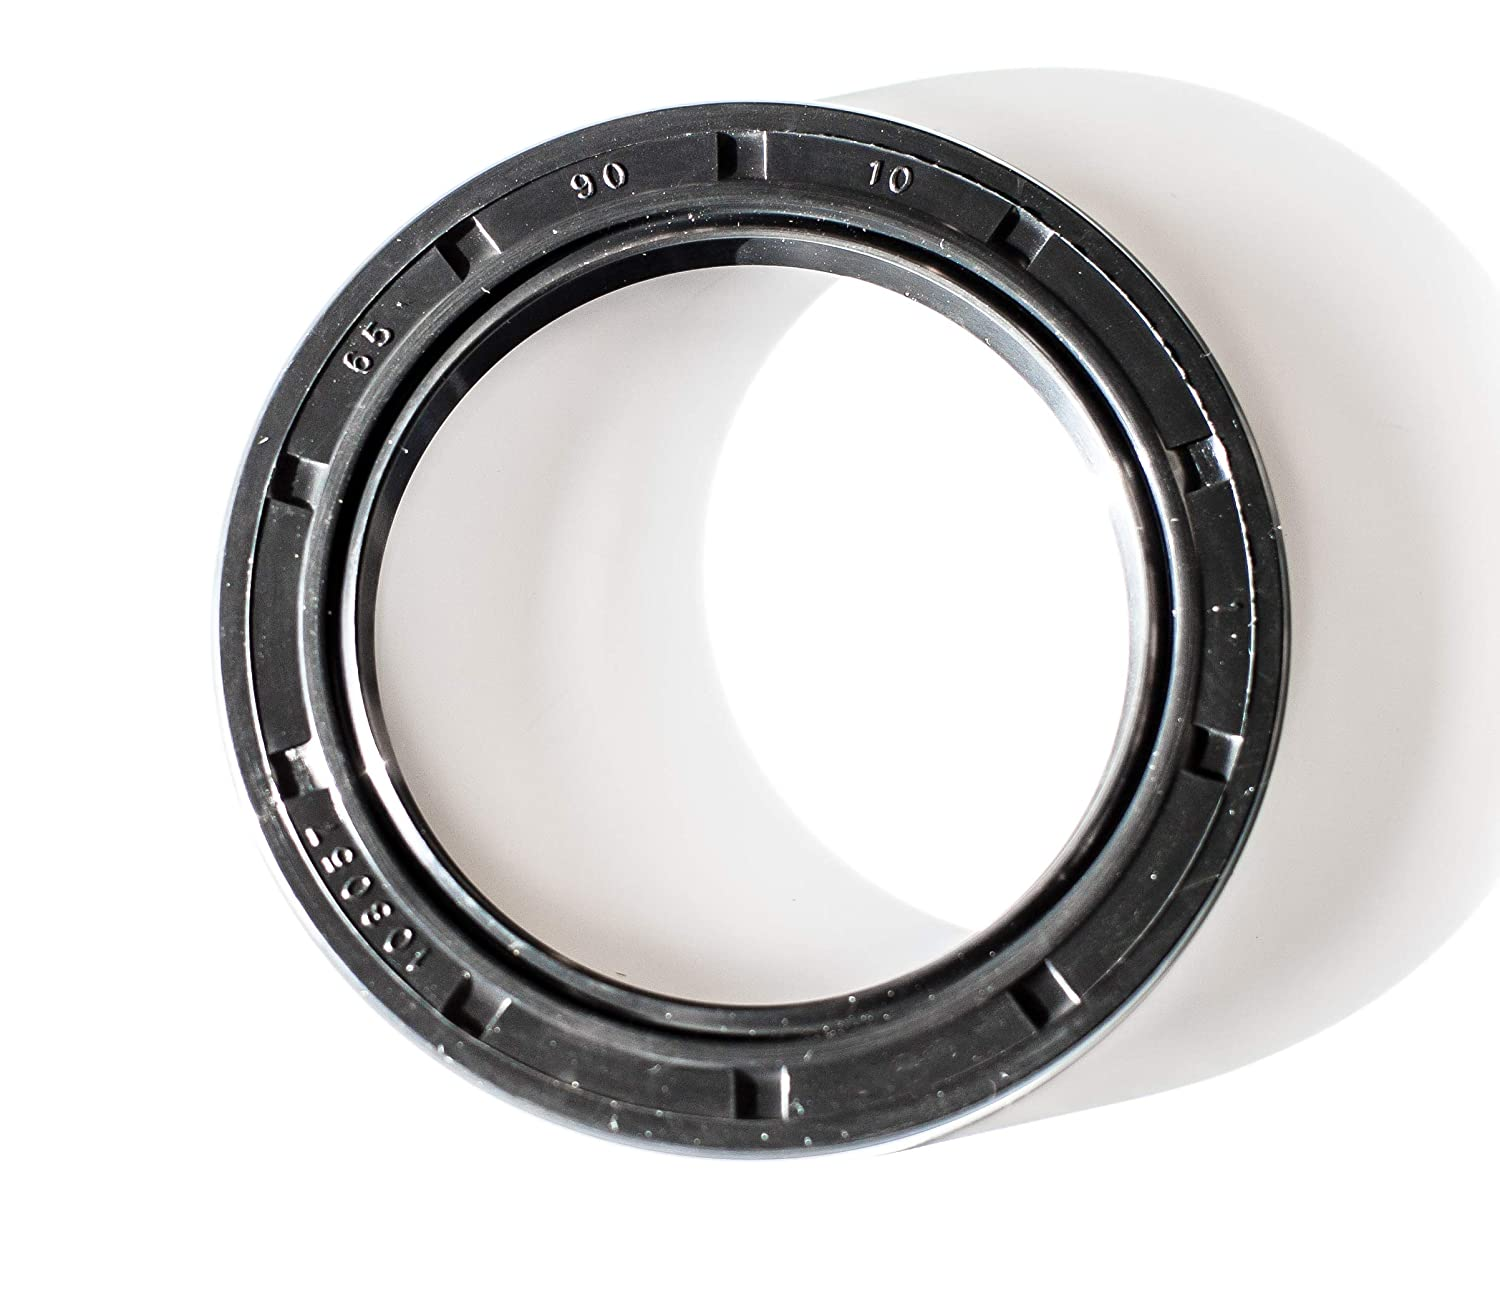 EAI Oil Seal 65mm X 90mm X 10mm (2 PCS) TC Double Lip w/Spring. Metal Case w/Nitrile Rubber Coating